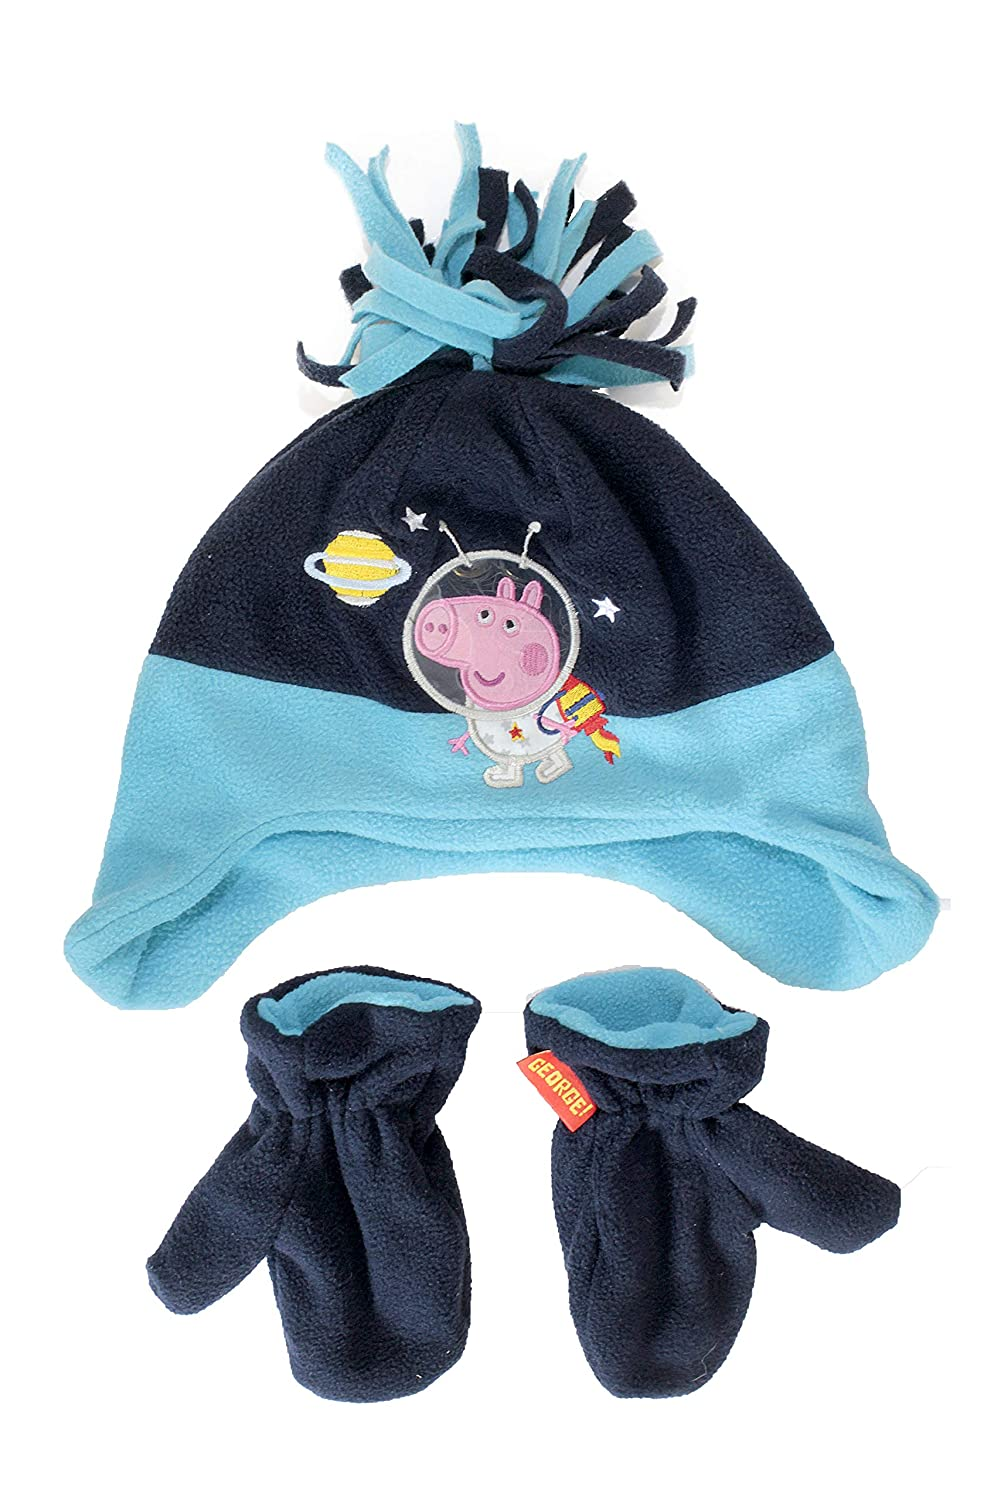 Official Licensed Peppa Pig George Winter Fleece Beanie Hat And Mittens Age 1-3 Years Space Design